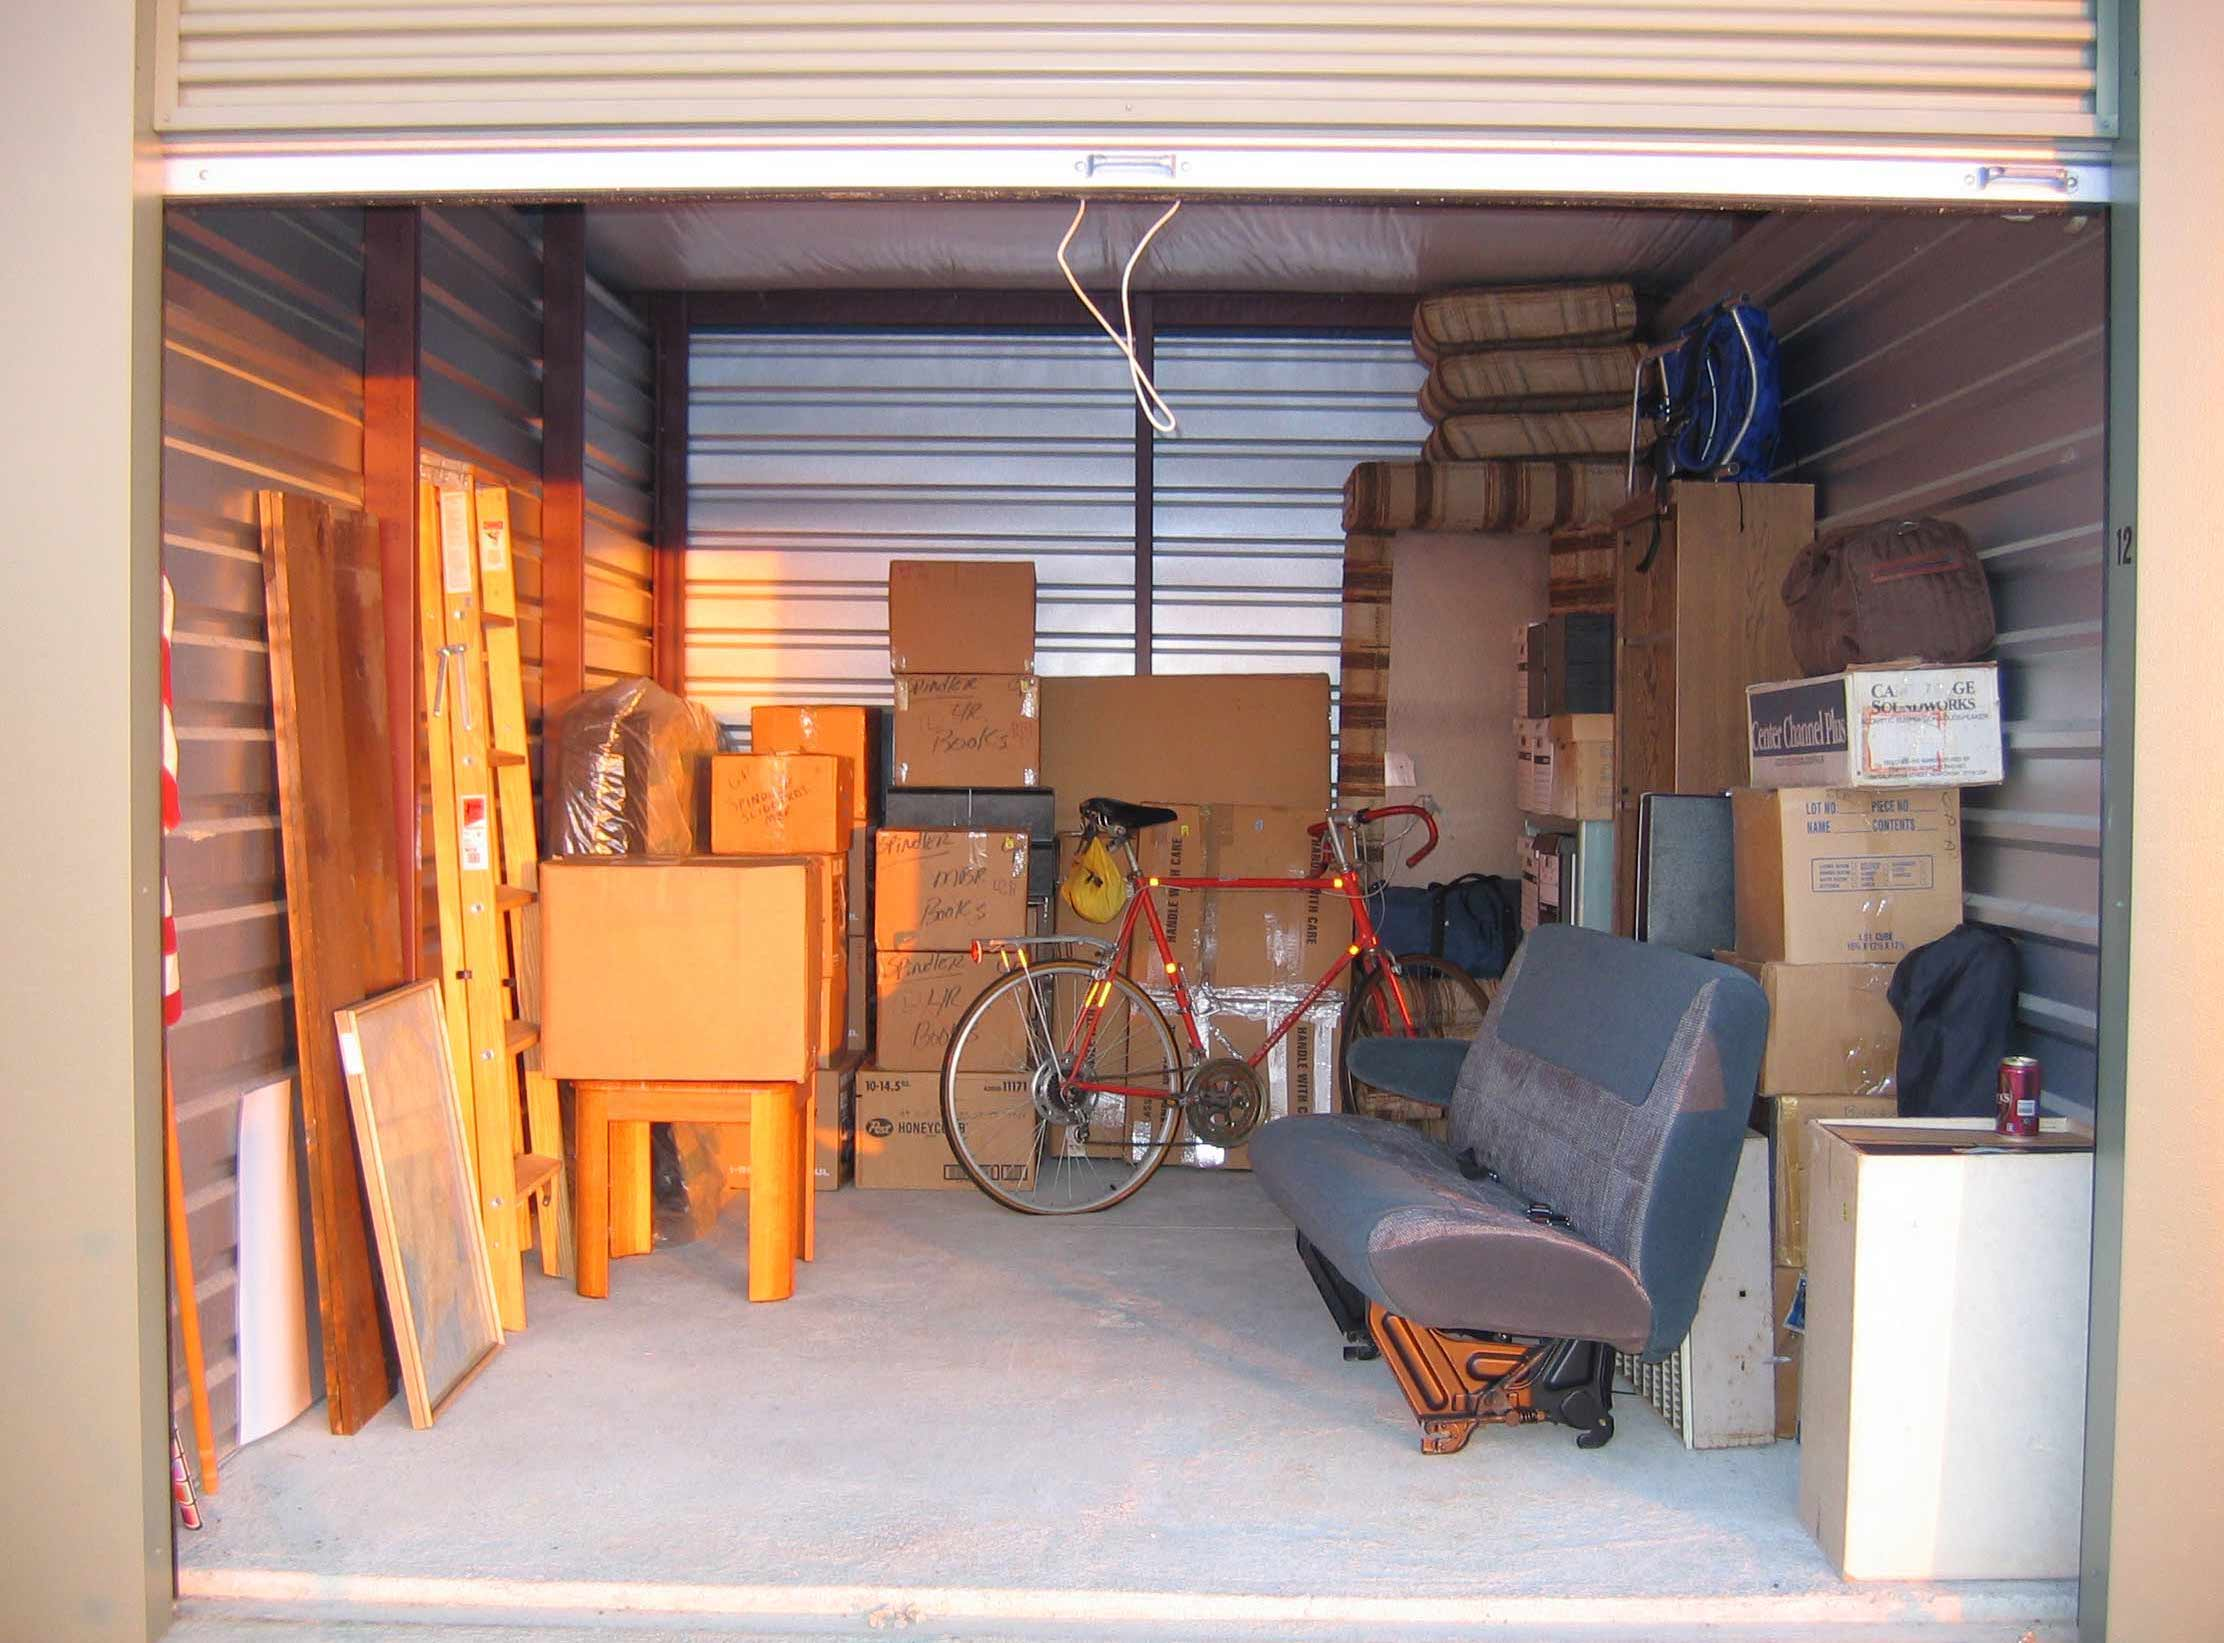 Renting A Self Storage Unit Vs Buying A Shipping Container & Storage Unit Search - Listitdallas